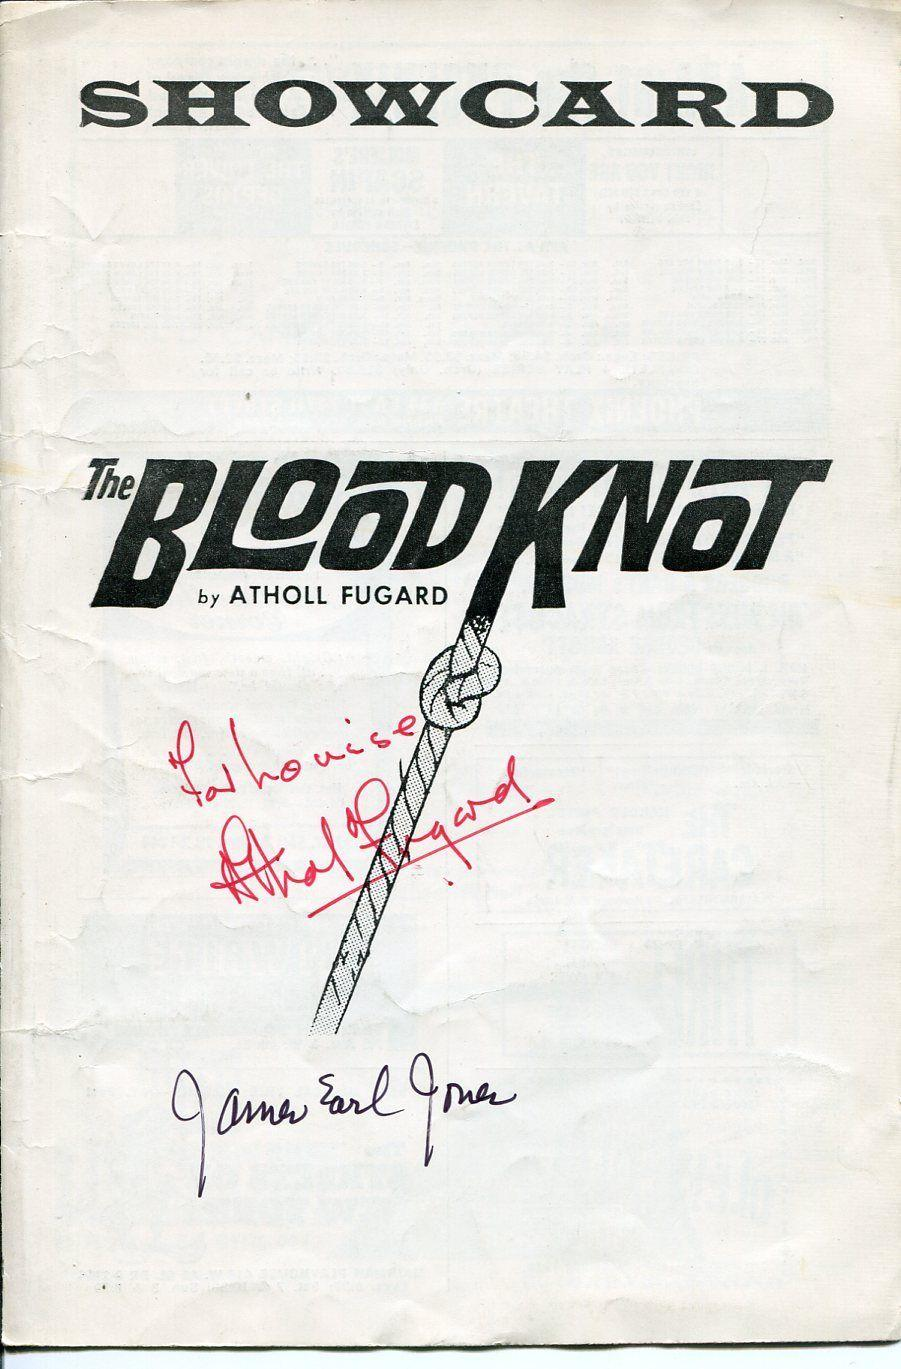 James Earl Jones Athol Fugard The Blood Knot Rare Signed Autograph Playbill